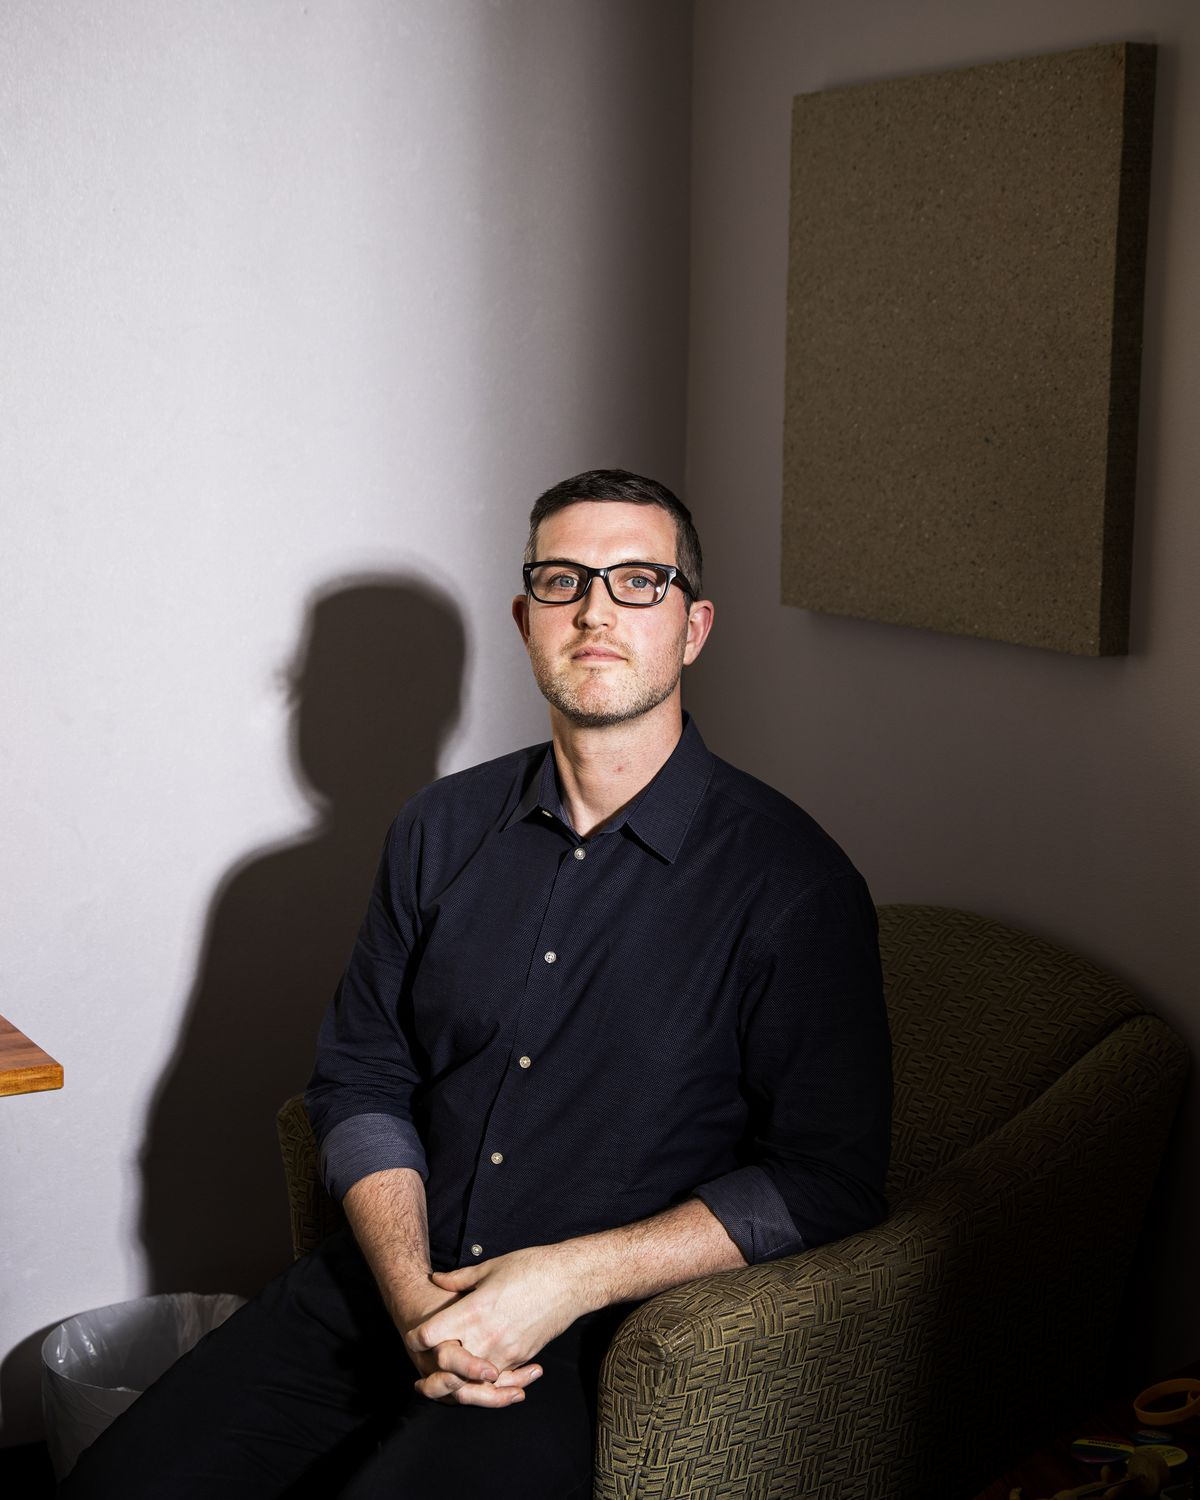 Ian McLoone felt stigmatized for using methadone to help him stop using heroin. He's now a therapist helping treat addiction.